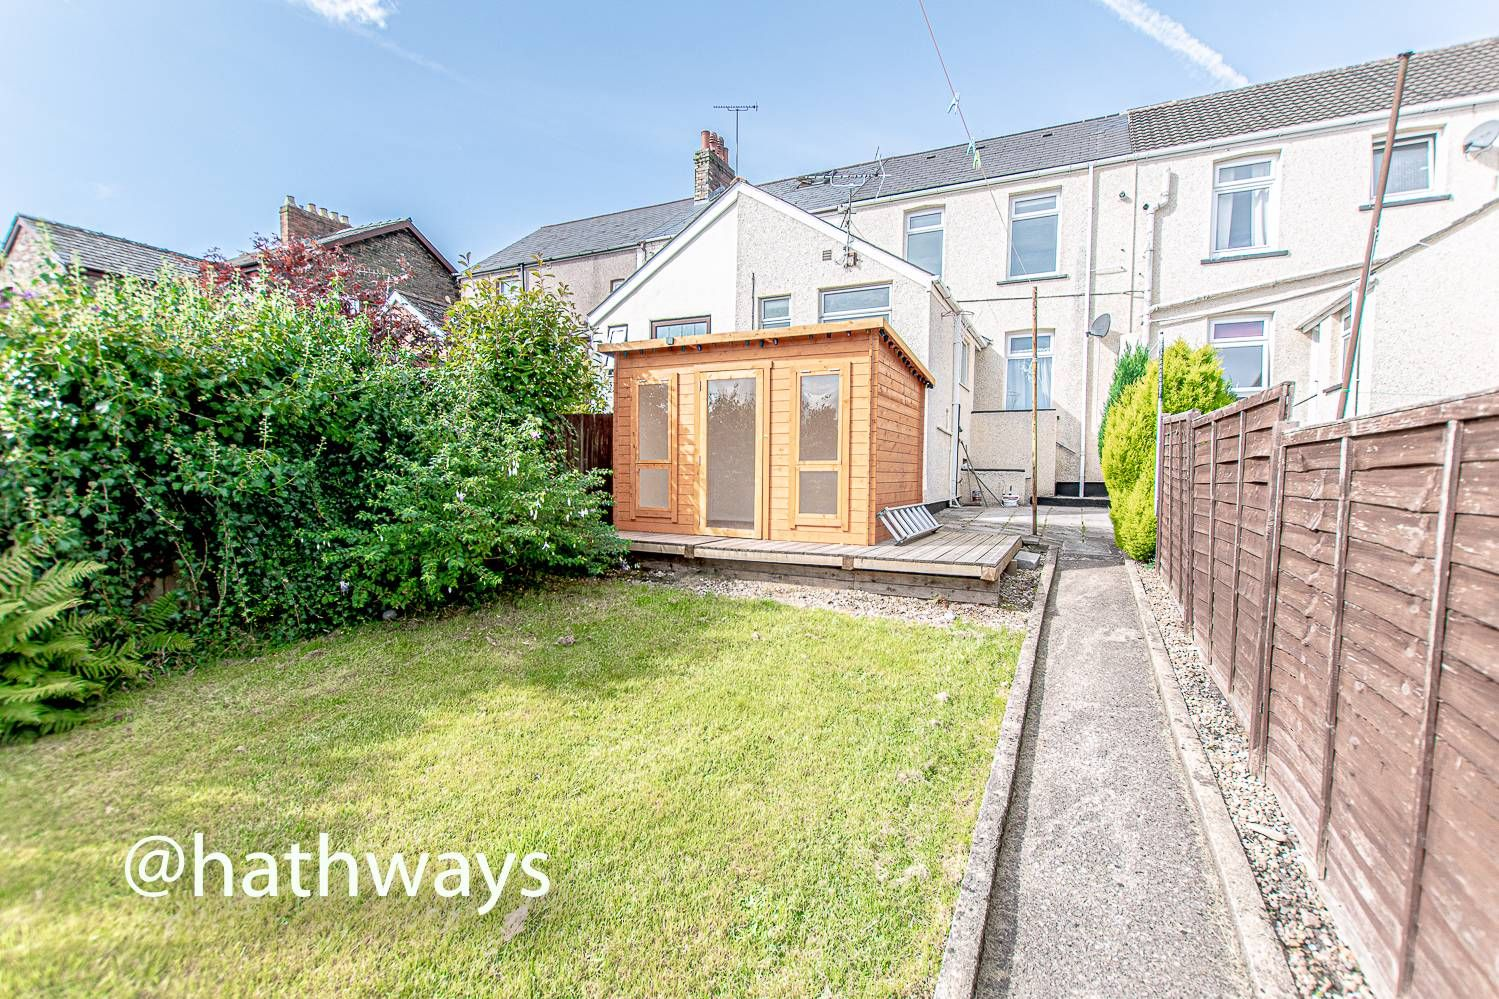 3 bed house for sale in Picton Street  - Property Image 43